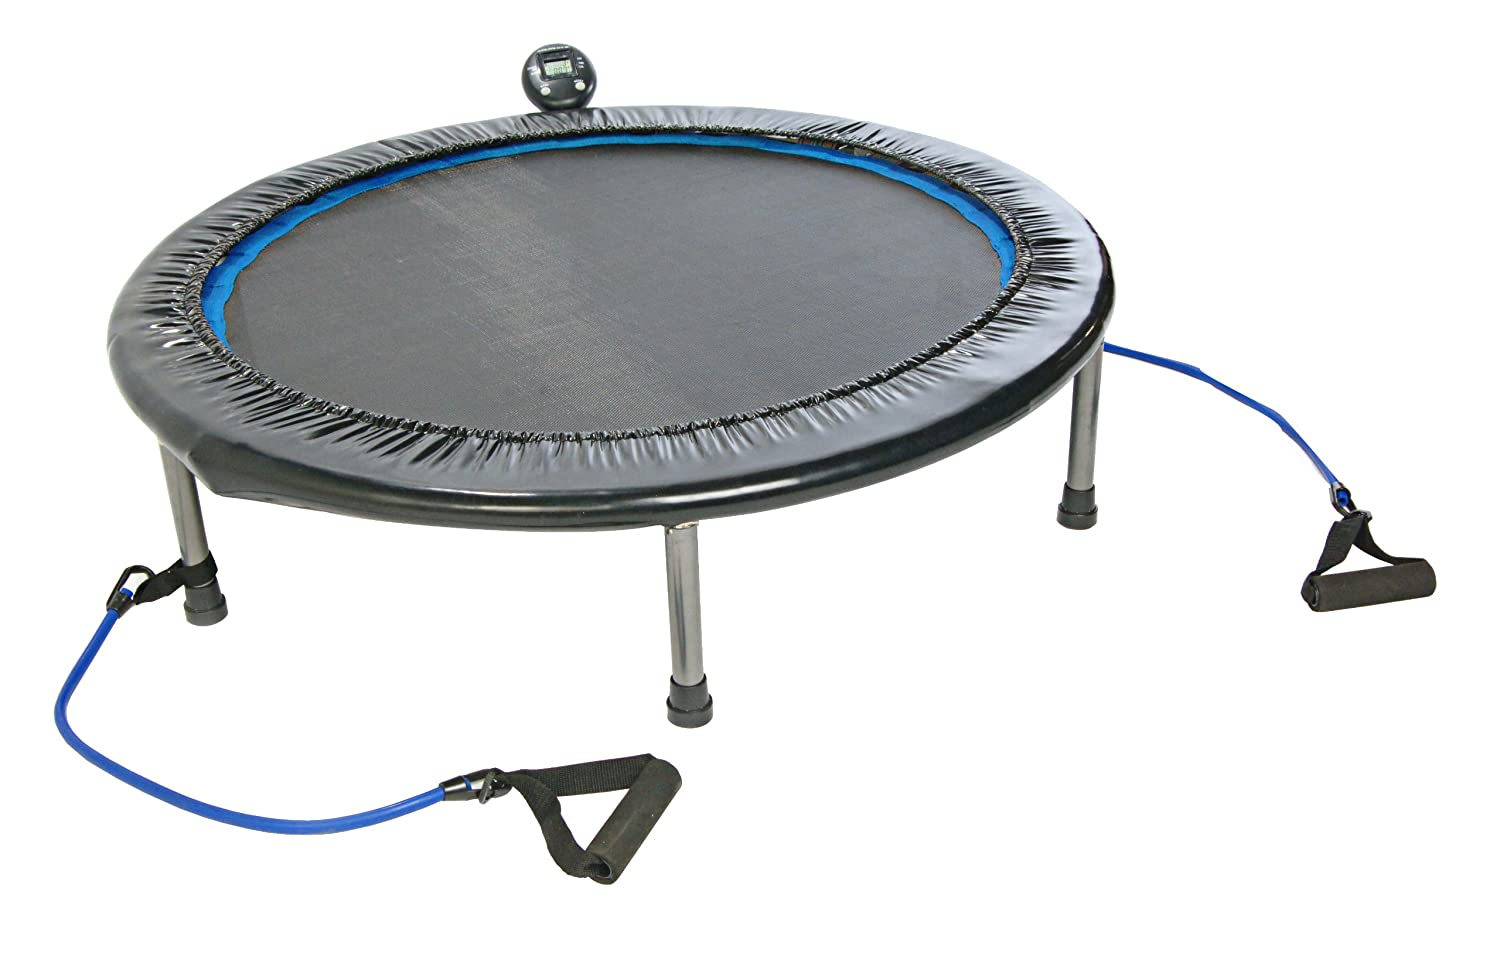 Trampoline workout for weight loss 2014